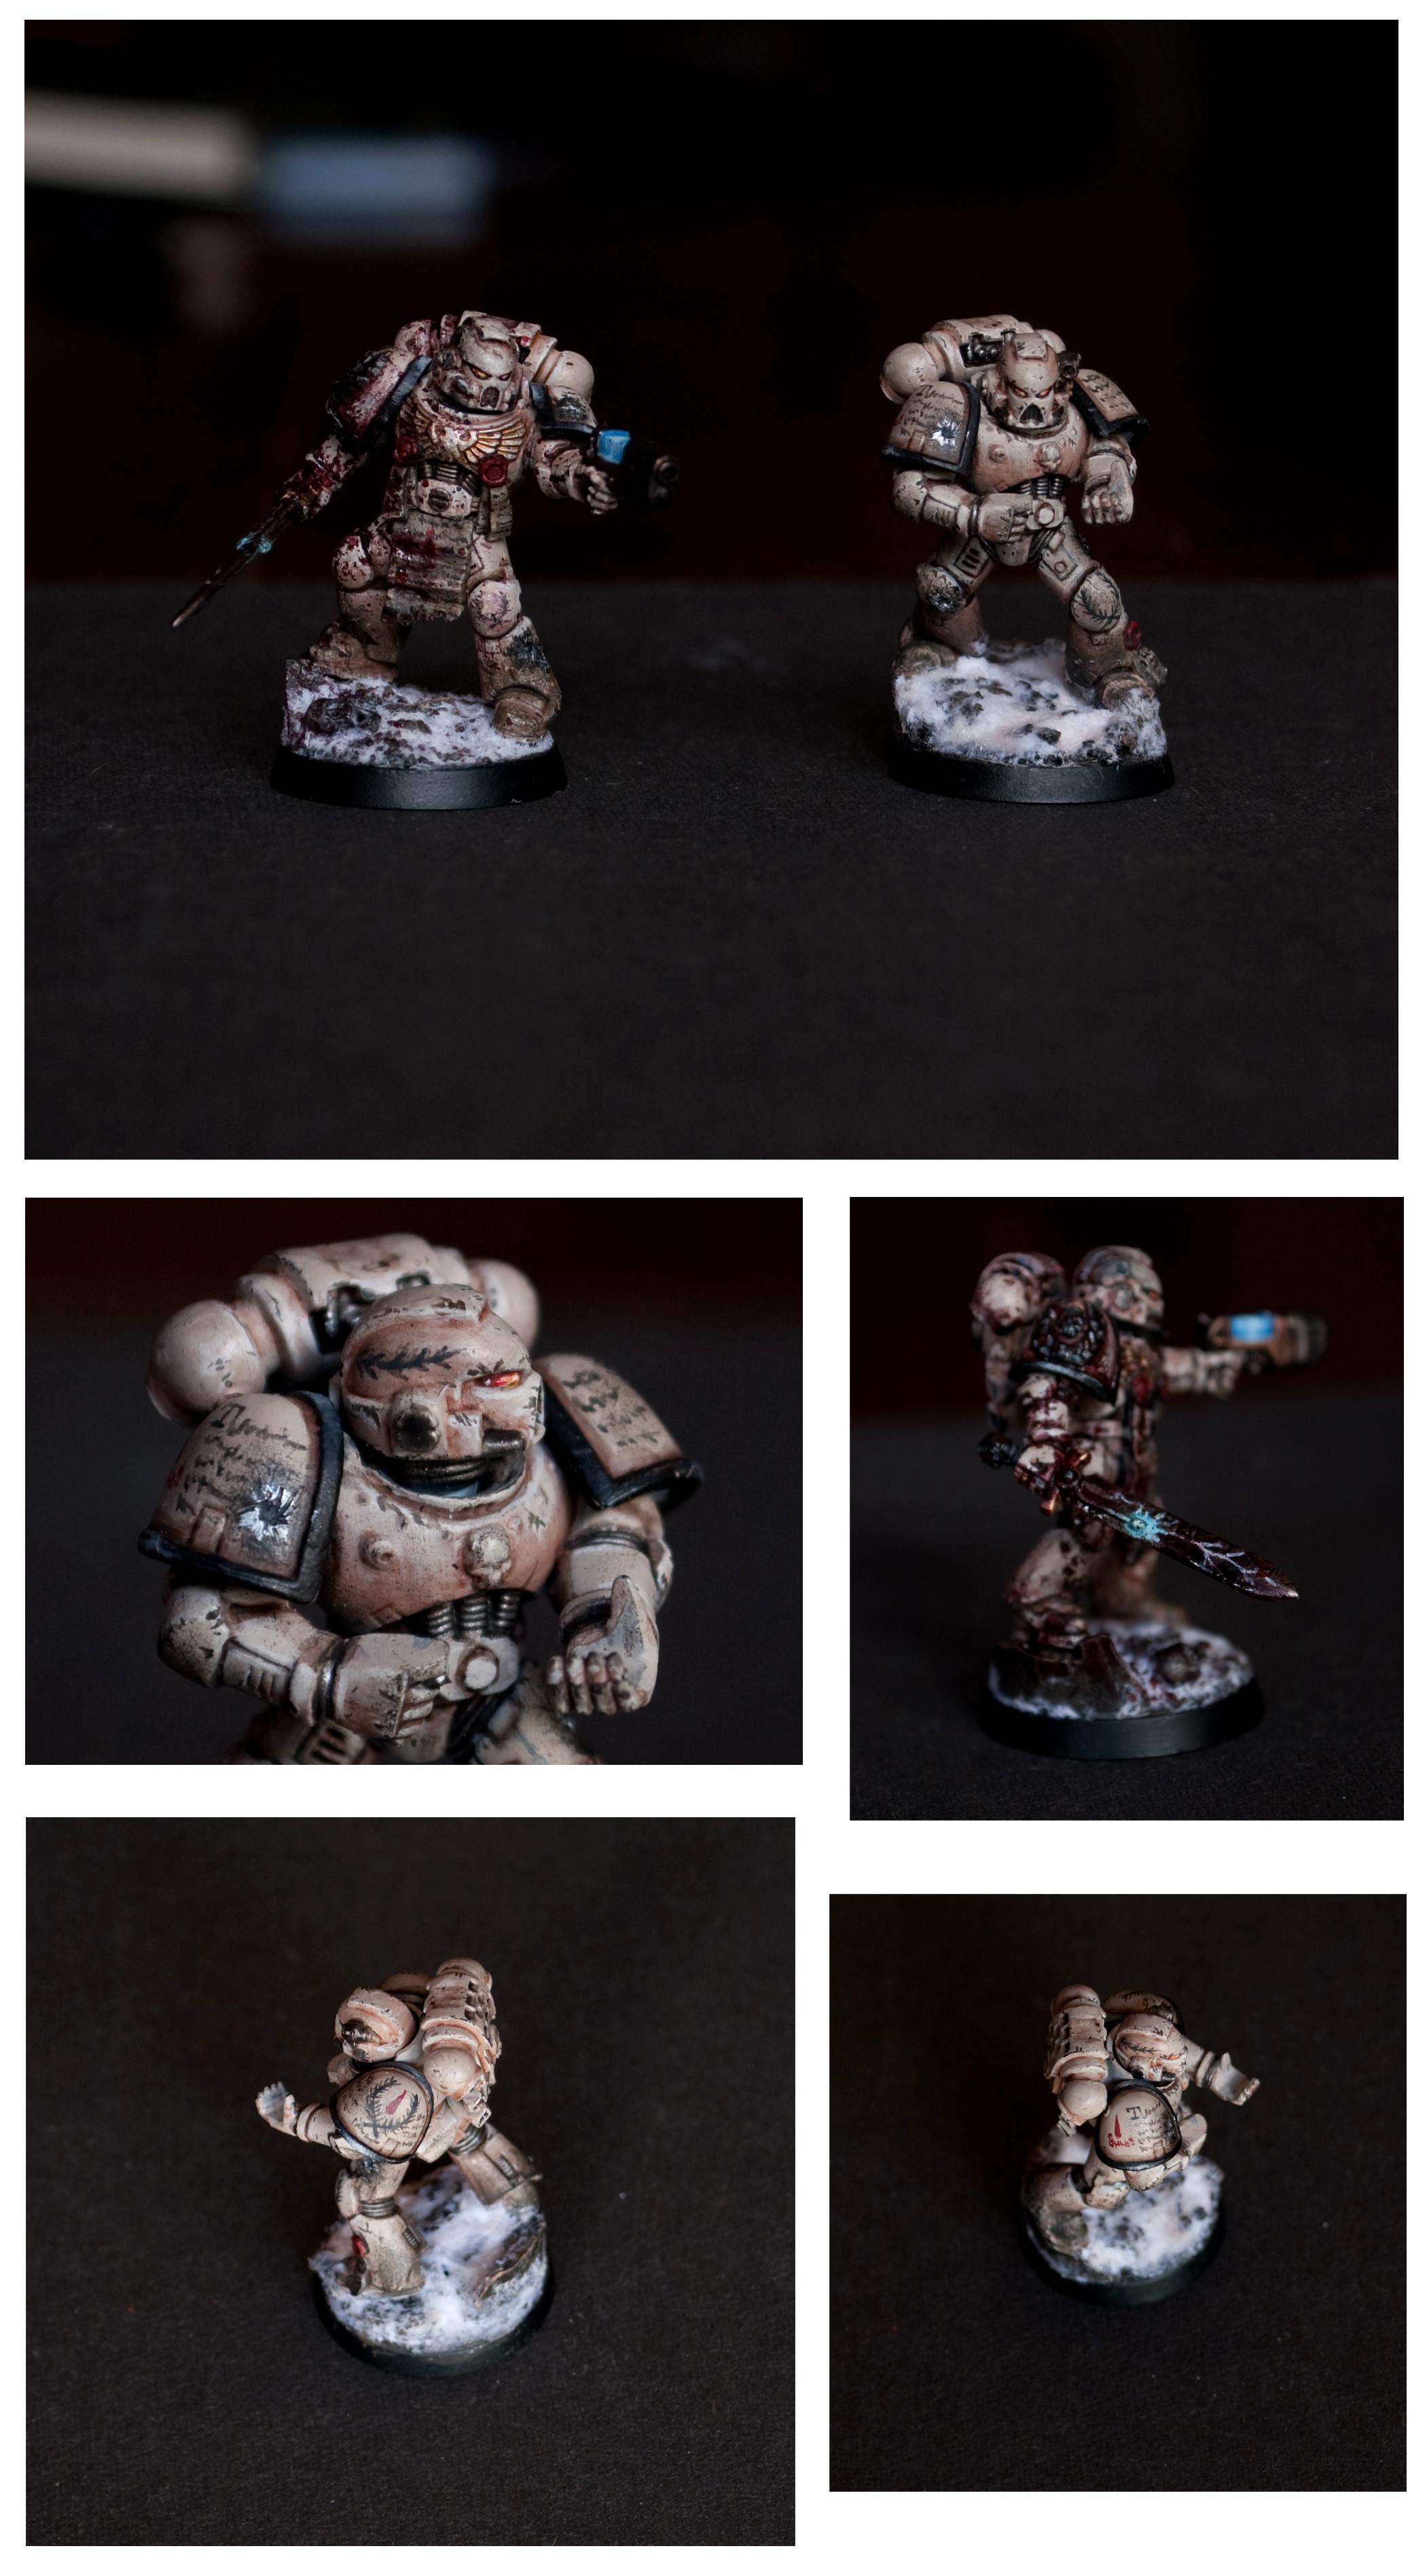 Battle Damage, Blood Angels, Fading, Freehand, Shading, Snow, Space Marines, Warhammer 40,000